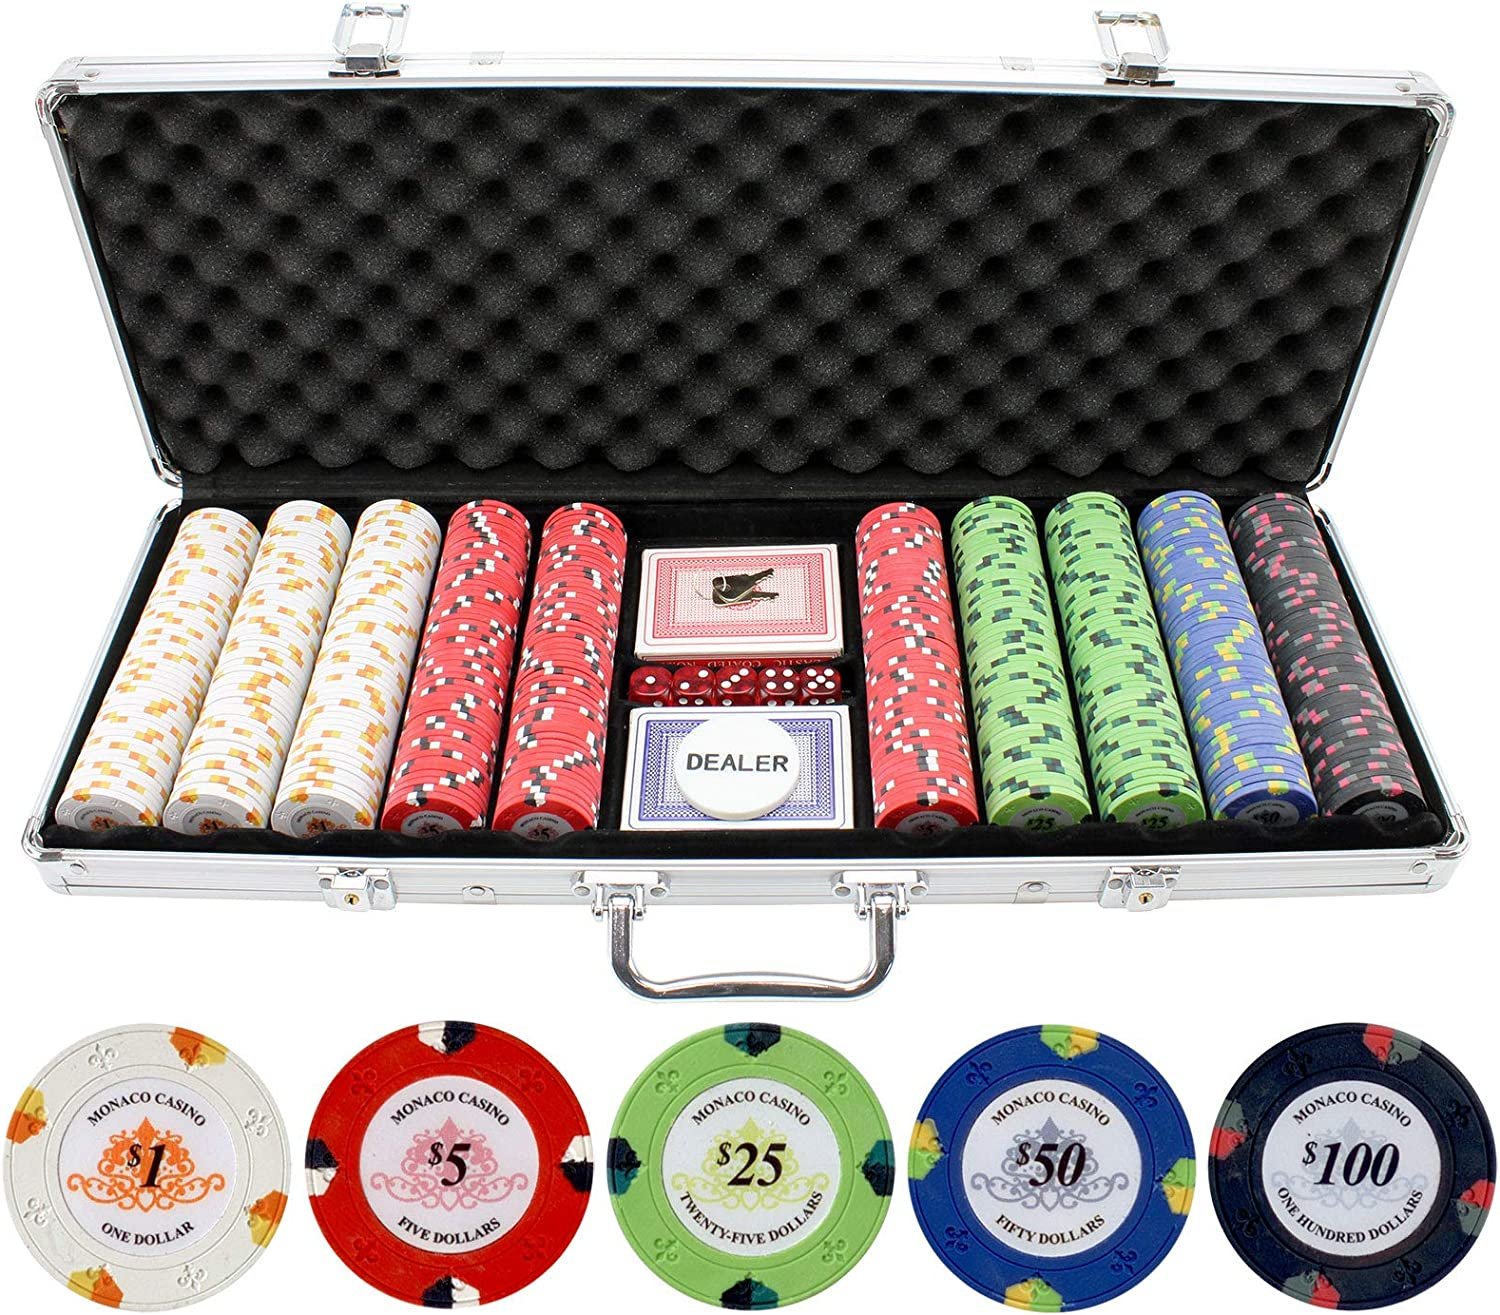 Texas holdem products